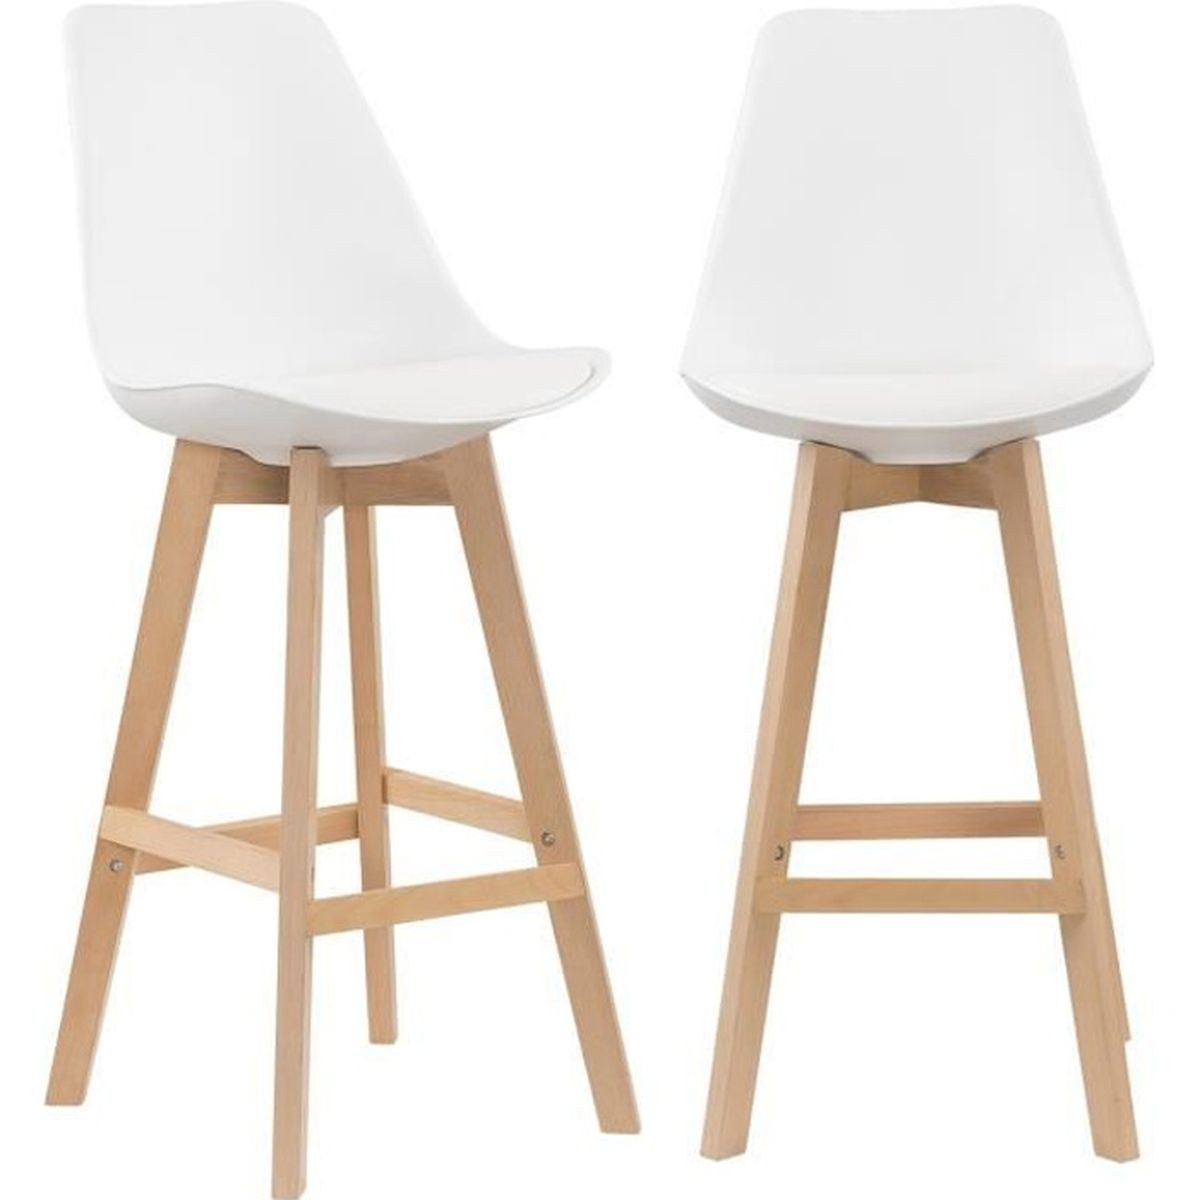 lot de 2 tabourets de bar scandinave blanc pieds en bois achat vente lot de 2 tabourets de. Black Bedroom Furniture Sets. Home Design Ideas